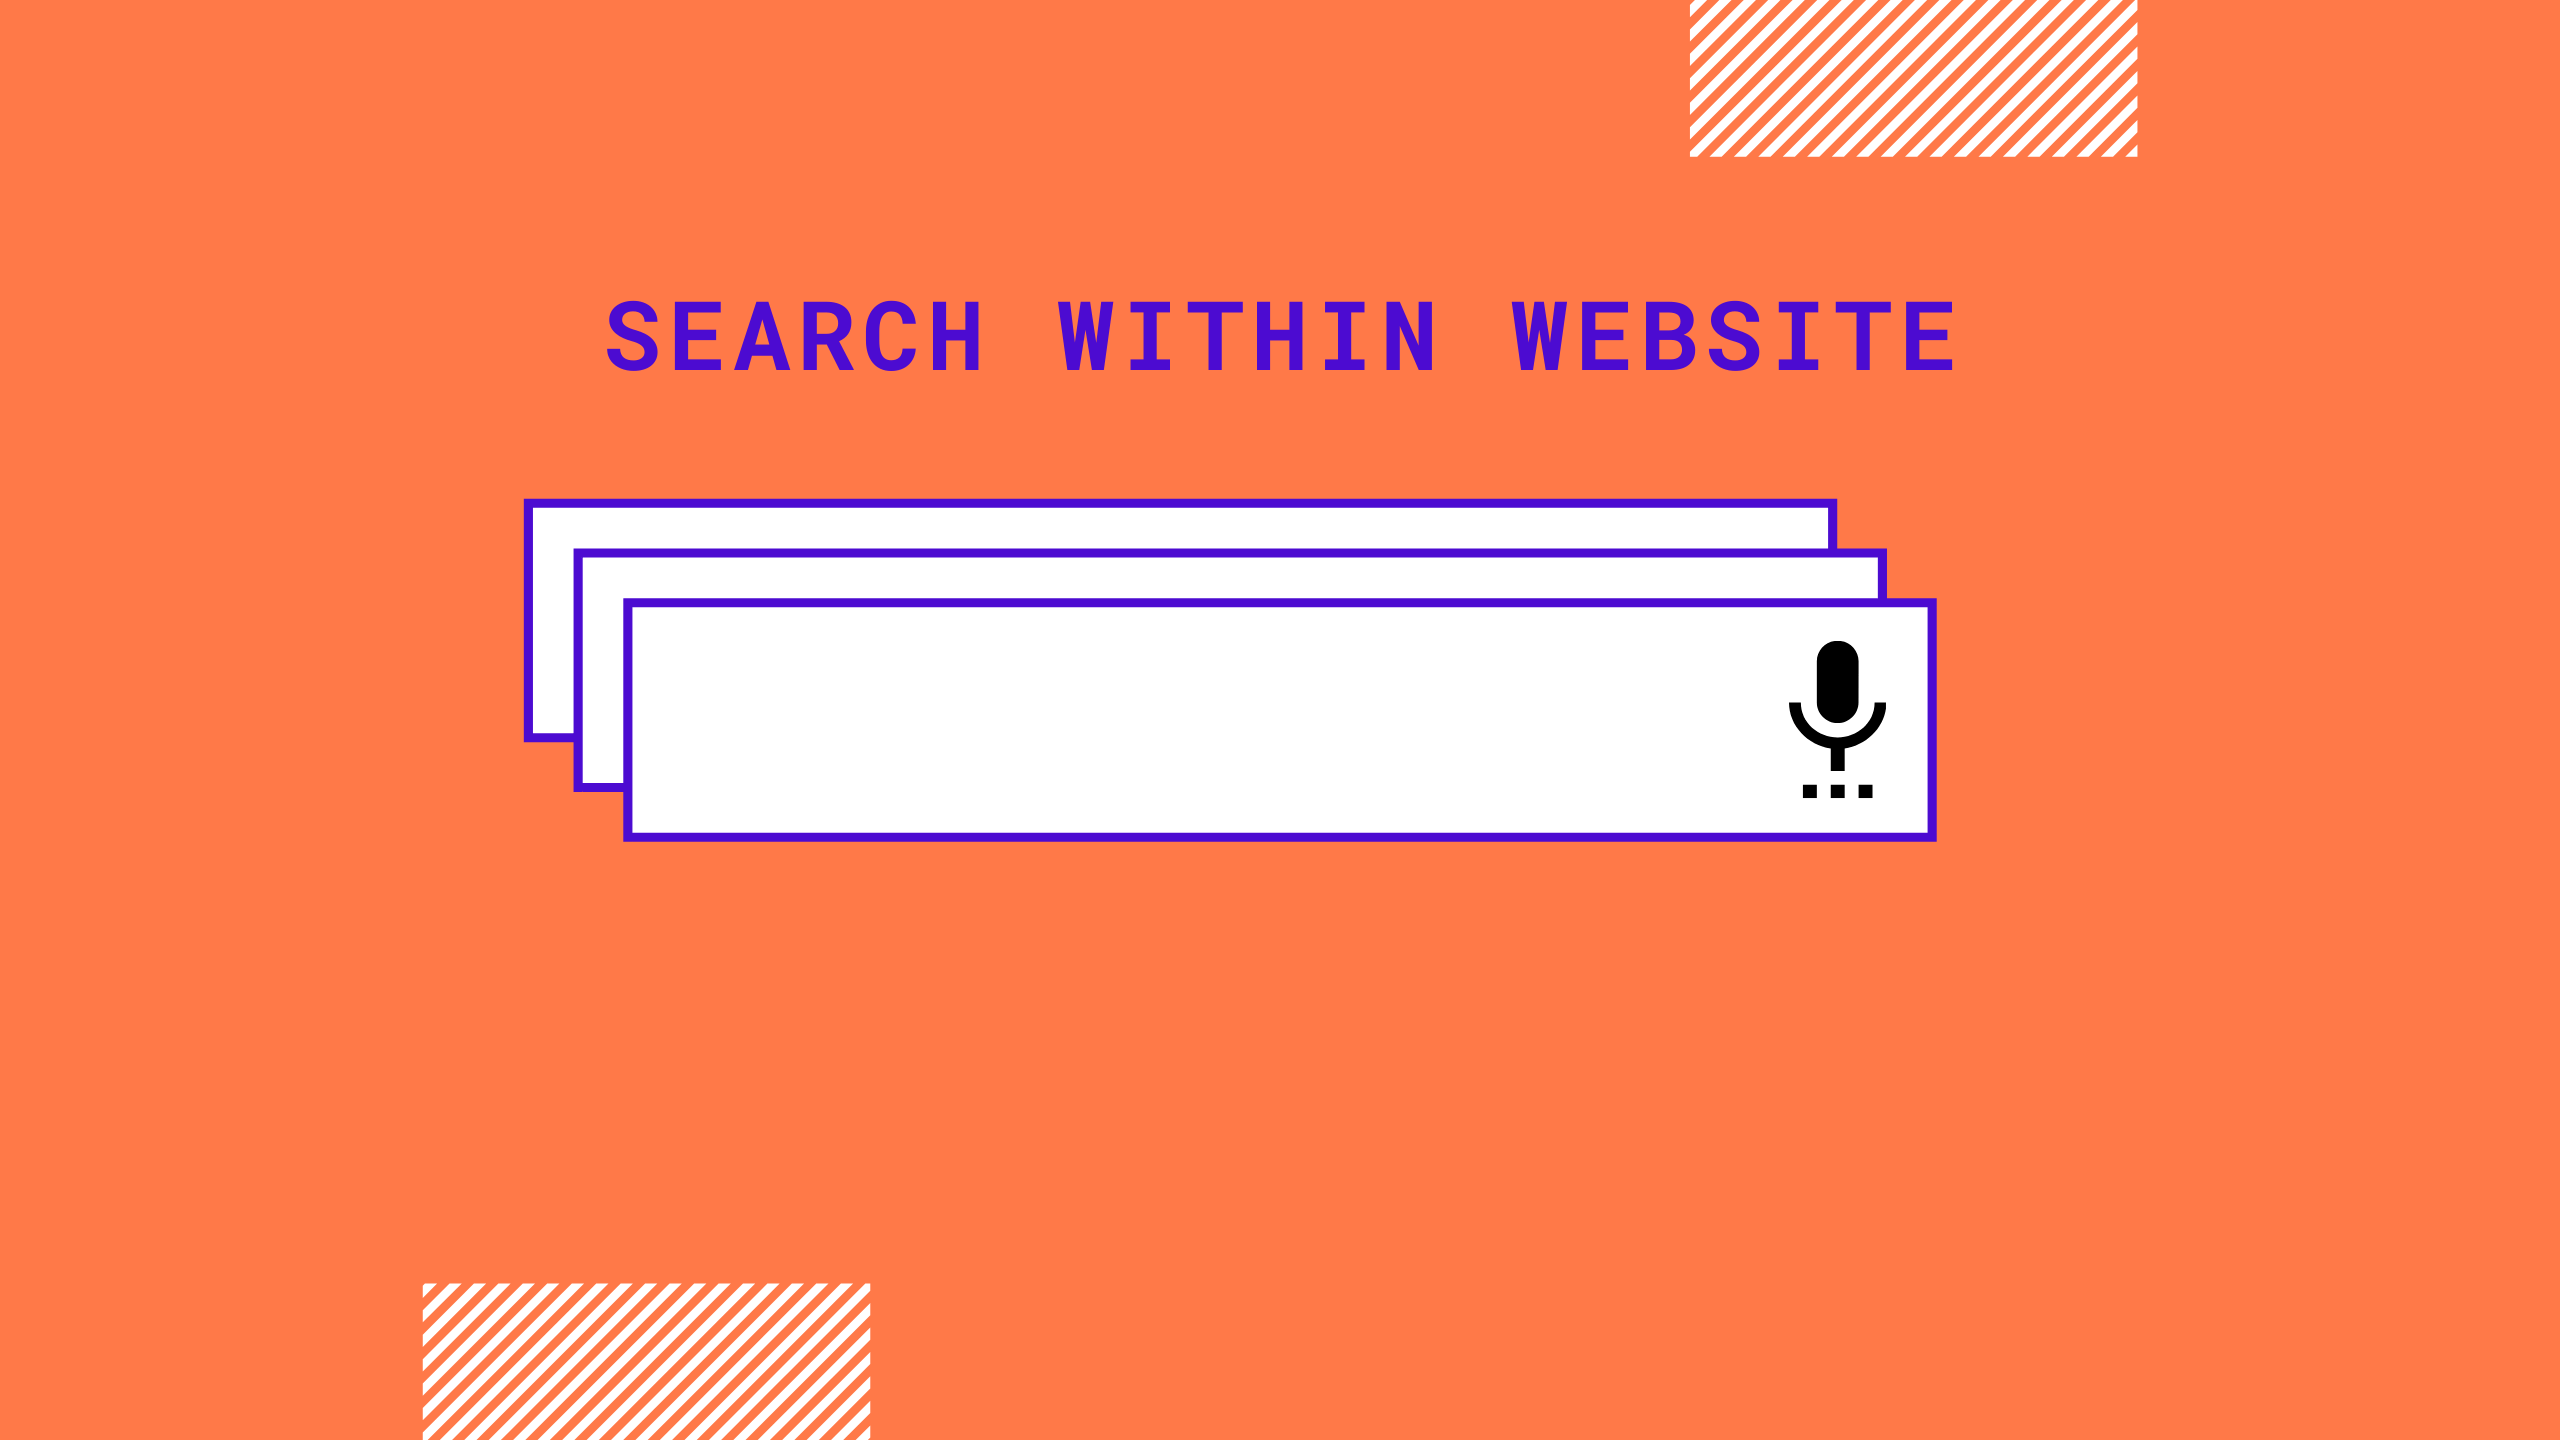 Search Within Website